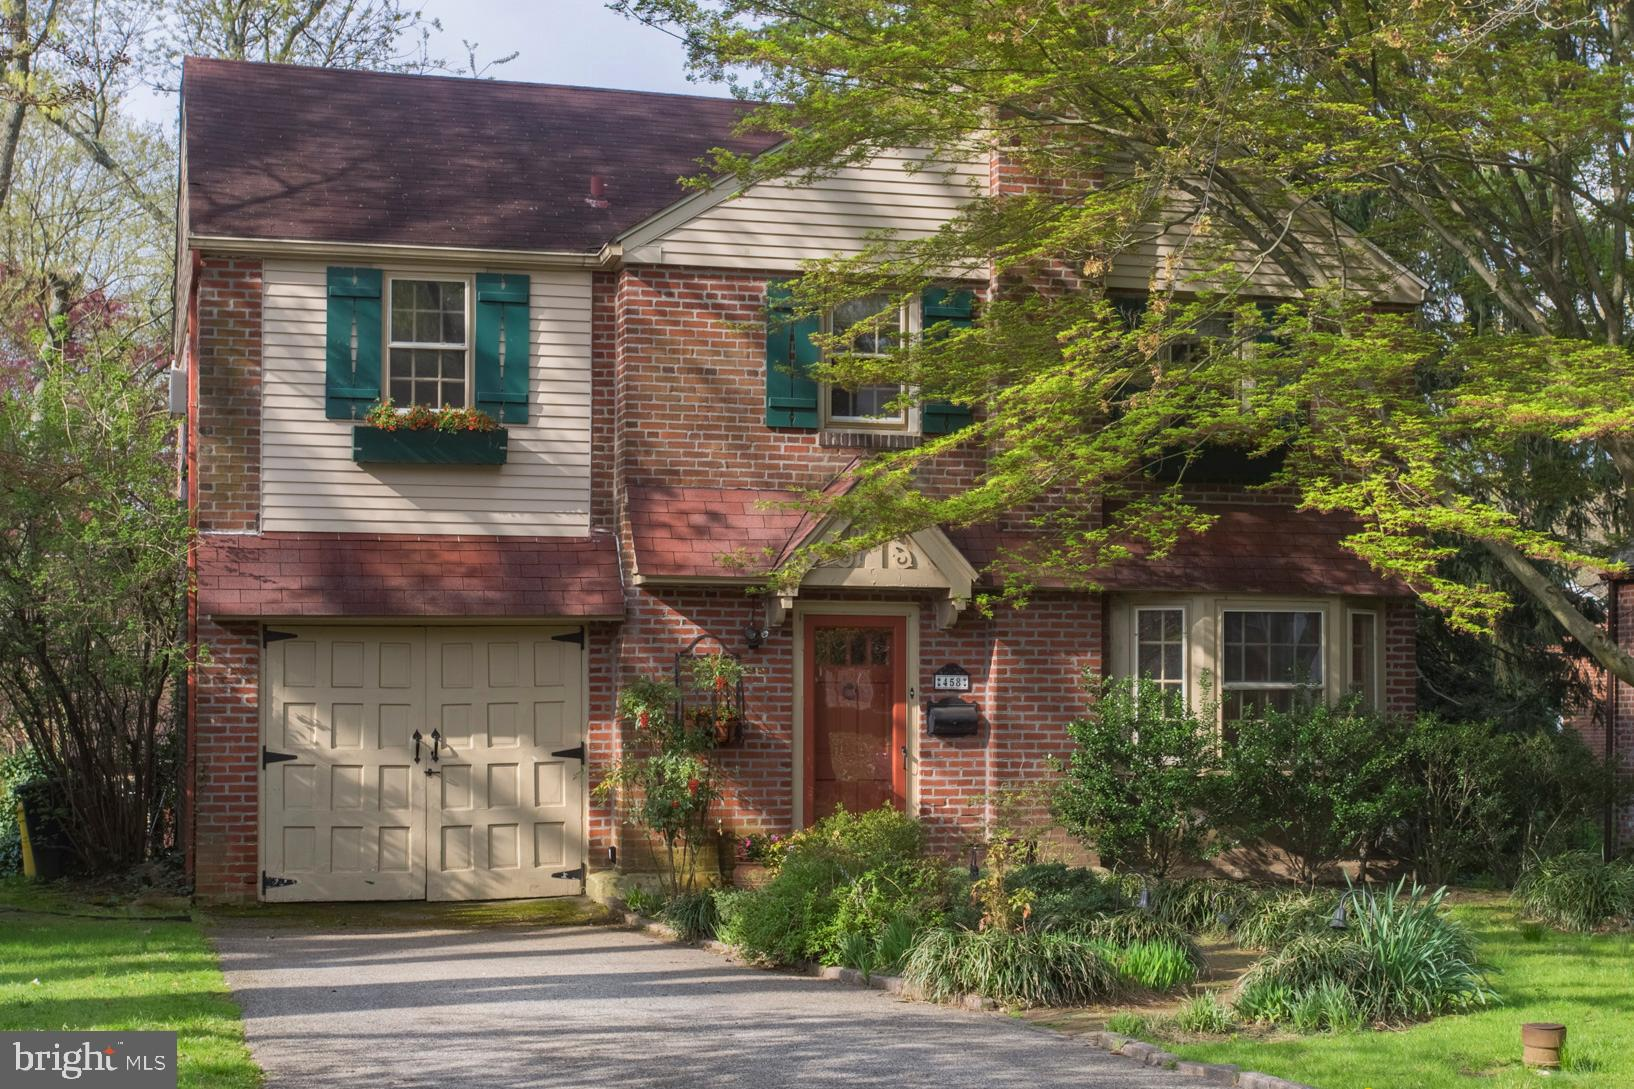 Take advantage of this exciting opportunity to live in a picture-perfect brick home in a tree-lined, family friendly neighborhood. Located in the much  sought after Lower Merion School District, just down the street from picturesque Wynnewood Valley Park. This lovely Colonial is move-in ready, and has many charming features.  Four (4) spacious bedrooms and 2.5 bathrooms. One Bedroom and bathroom are on the main level. Outside front features mature landscaping, a quaint brick path, window boxes, shutters, and a small storage garage.  Inside Open Layout design is light and airy, adaptable and very useable.  There are over 2100 square feet of living space to be enjoyed. The remodeled kitchen has upgraded cabinets and granite counters, leading to the light-filled 1st floor Bedroom/Sunroom/Den and beautiful full bathroom with Stall Shower. This Bedroom/Sunroom/Den contains a wall of glass windows with French doors and high-end Silhouette Blinds looking out onto a level, fenced in, Back Yard, which features a bi-level wooden deck and gas grille hookup.  The partially fenced backyard also has a storage shed, and professionally built Play House (with all year round heating and cooling), which could also be used as an Artist Studio, Office or Meditation Space. There are pull-down stairs (in the 2nd floor middle bedroom) that accesses a large floored attic for extra storage. The spacious finished basement is carpeted, has drywall ceiling and recessed lighting -- perfect as an exercise and rec room. It also features a Queen-sized built-in Murphy Bed, laundry room and powder room.  Supermarkets, high-end shopping, public transit, the train station Lankenau Hospital and schools are all within minutes.